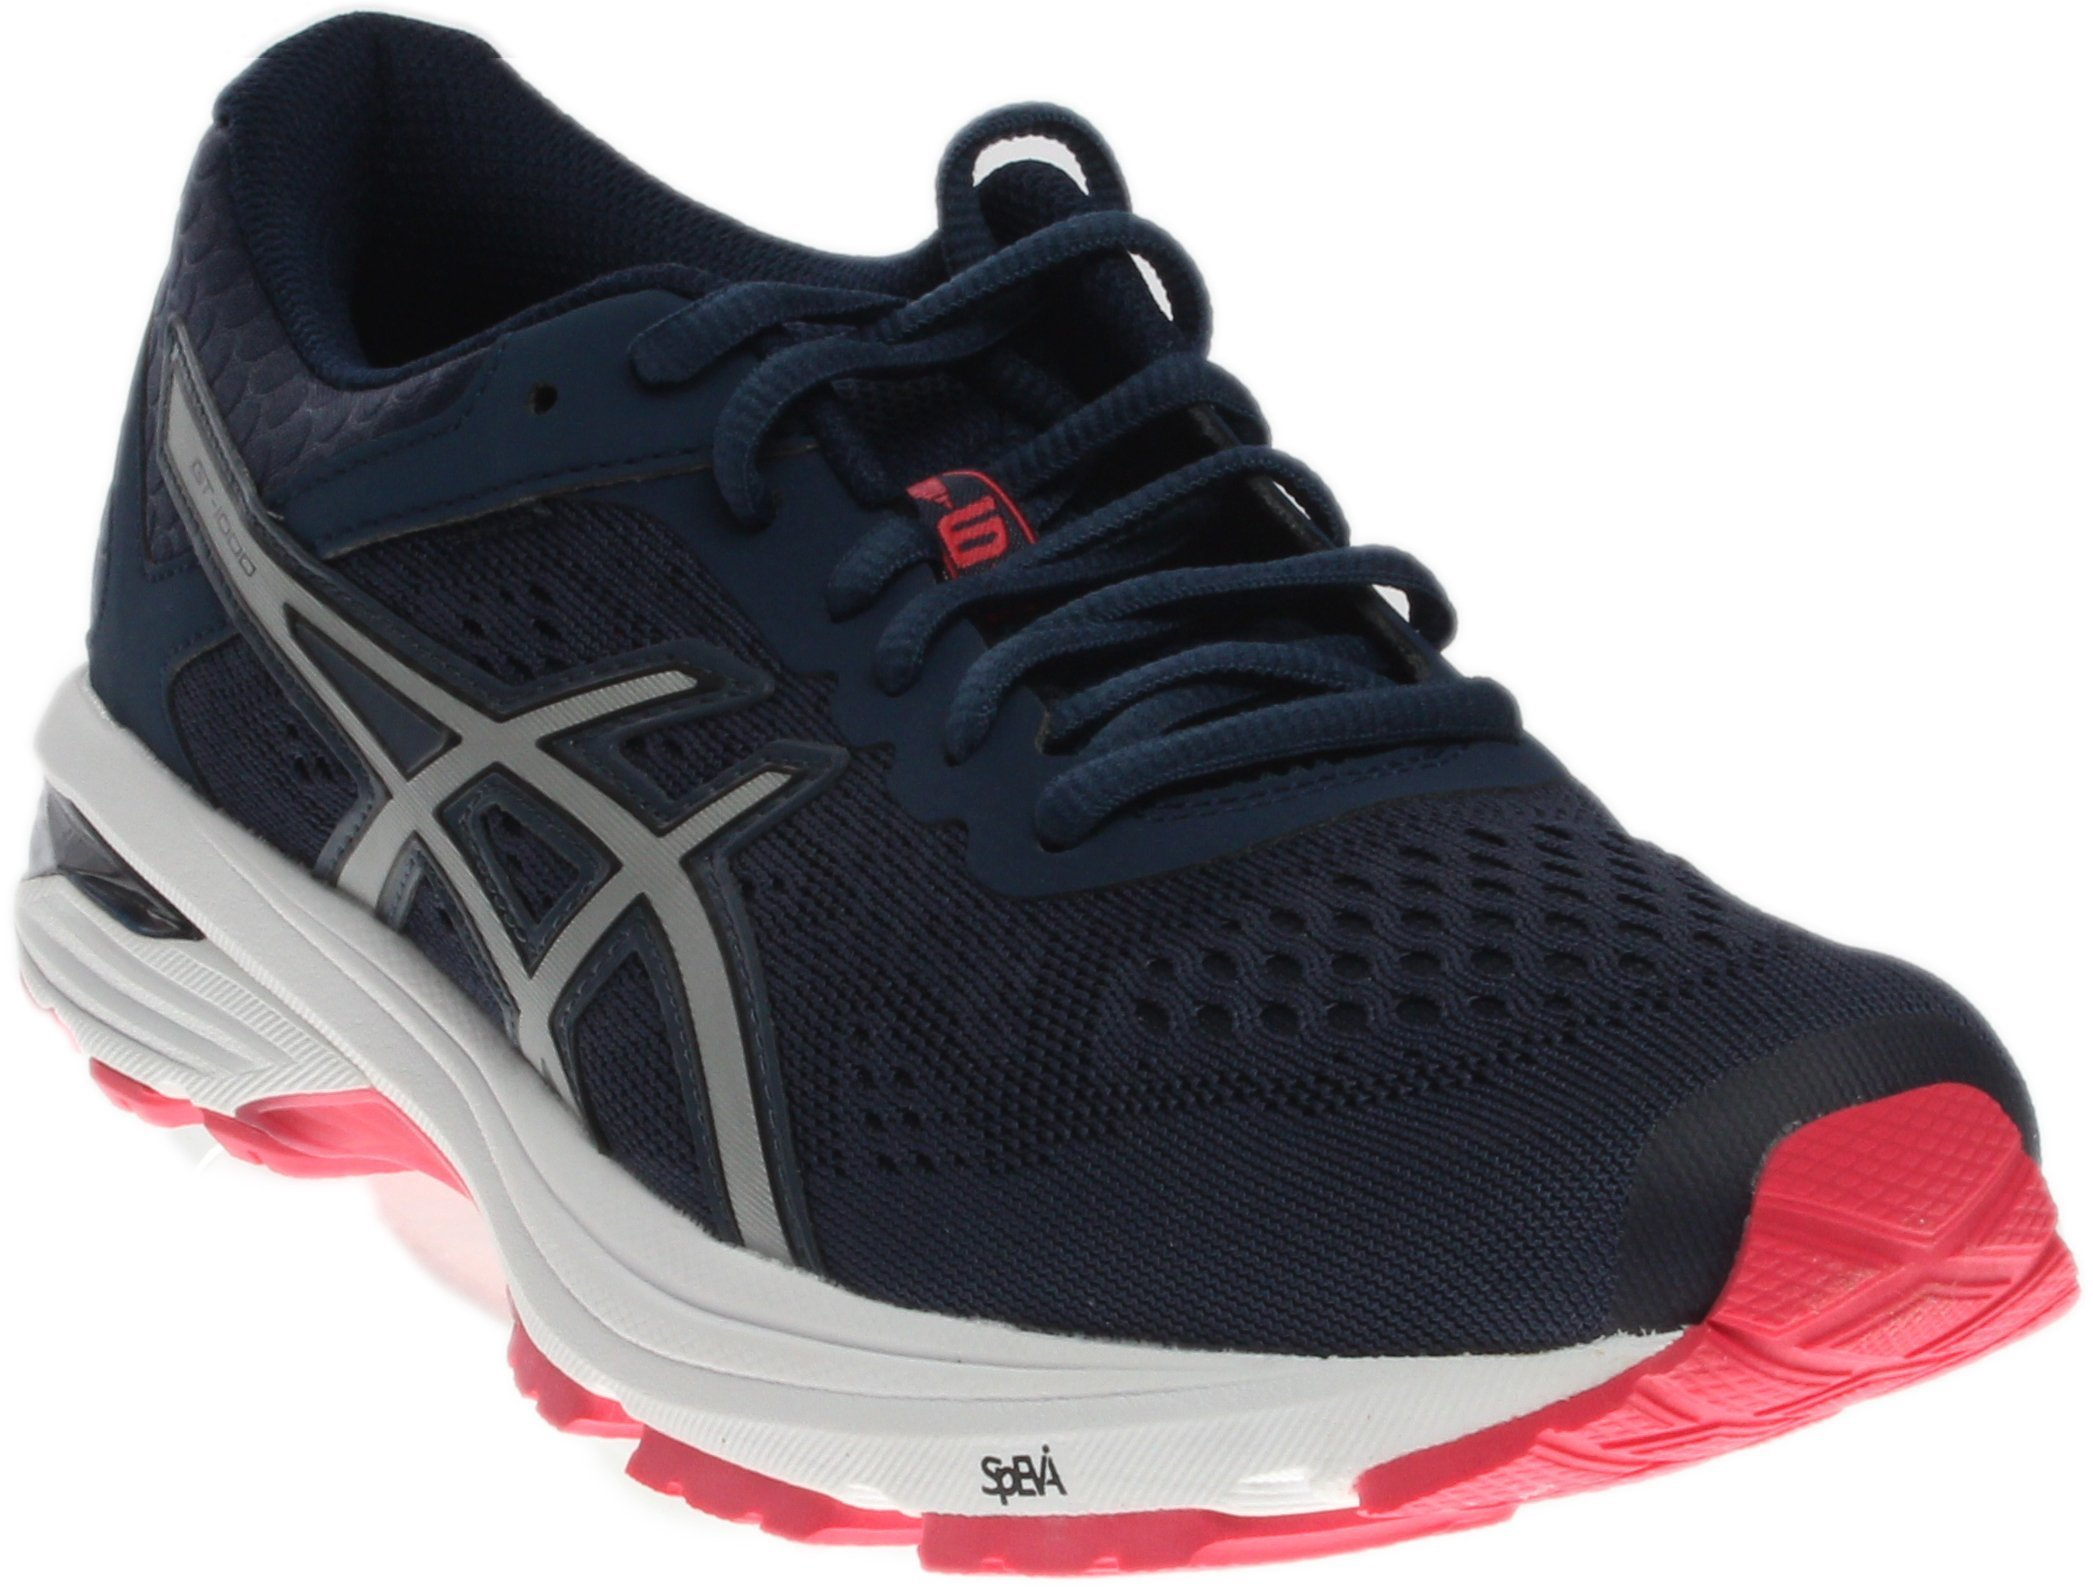 ASICS GT-1000 6 Running Shoes - Insignia Blue/Silver/Rouge Red - Womens - 6.5